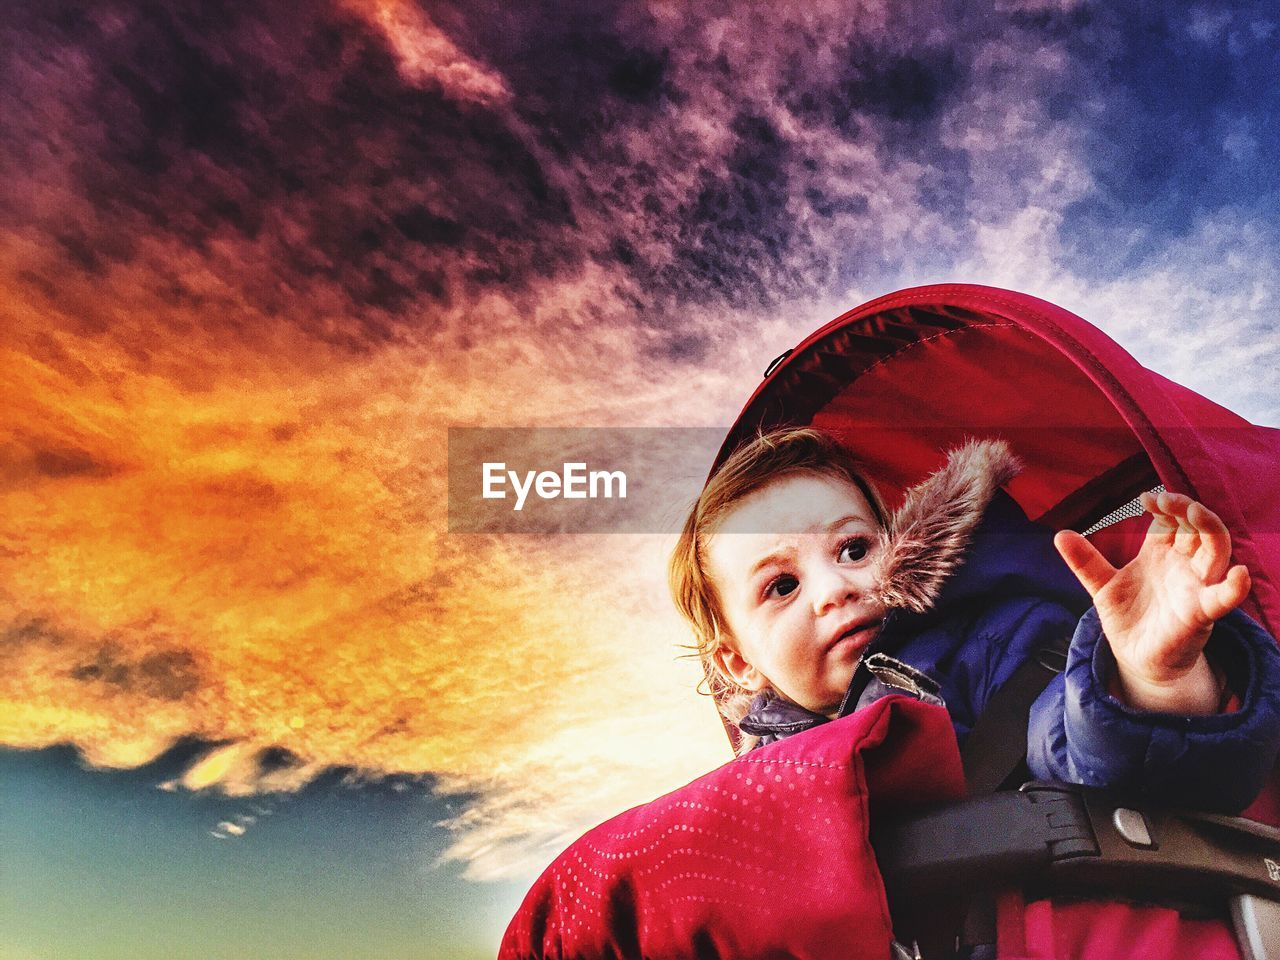 Low Angle View Of Child In Baby Carriage Against Cloudy Sky At Sunset